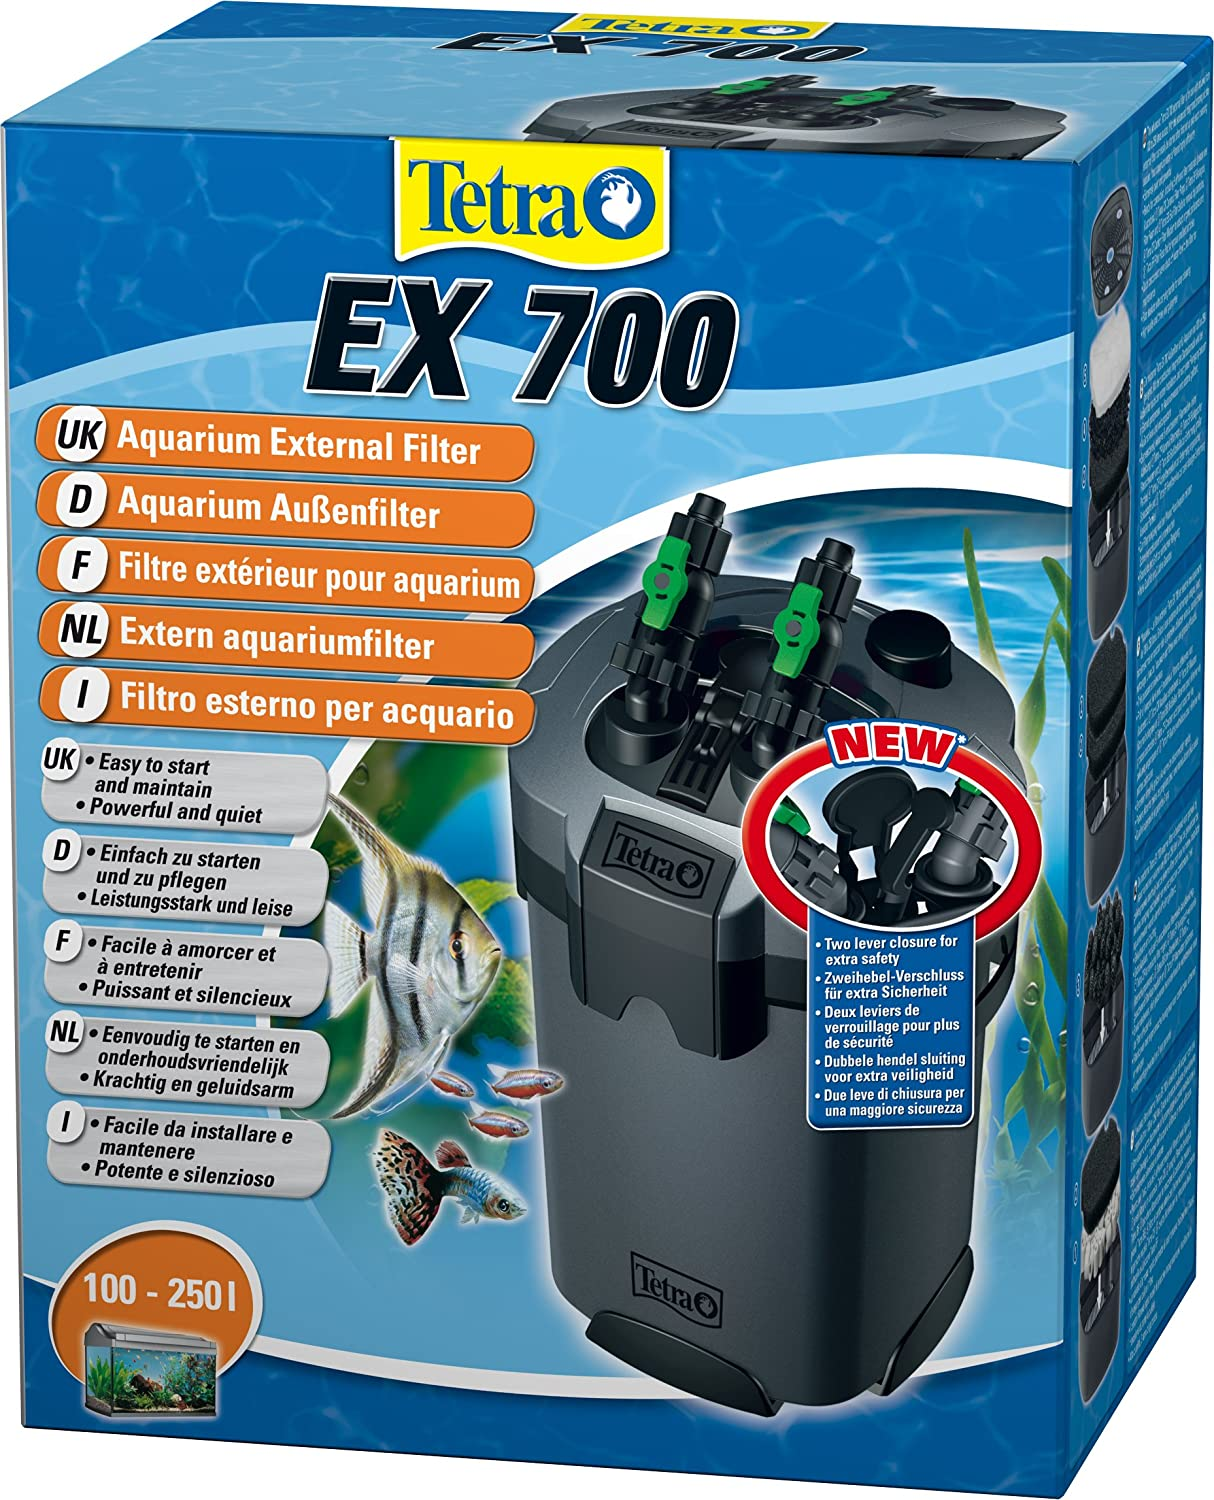 91ri1lf9JjL._SL1500_ tetra tec ex 700 external filter amazon co uk pet supplies  at edmiracle.co